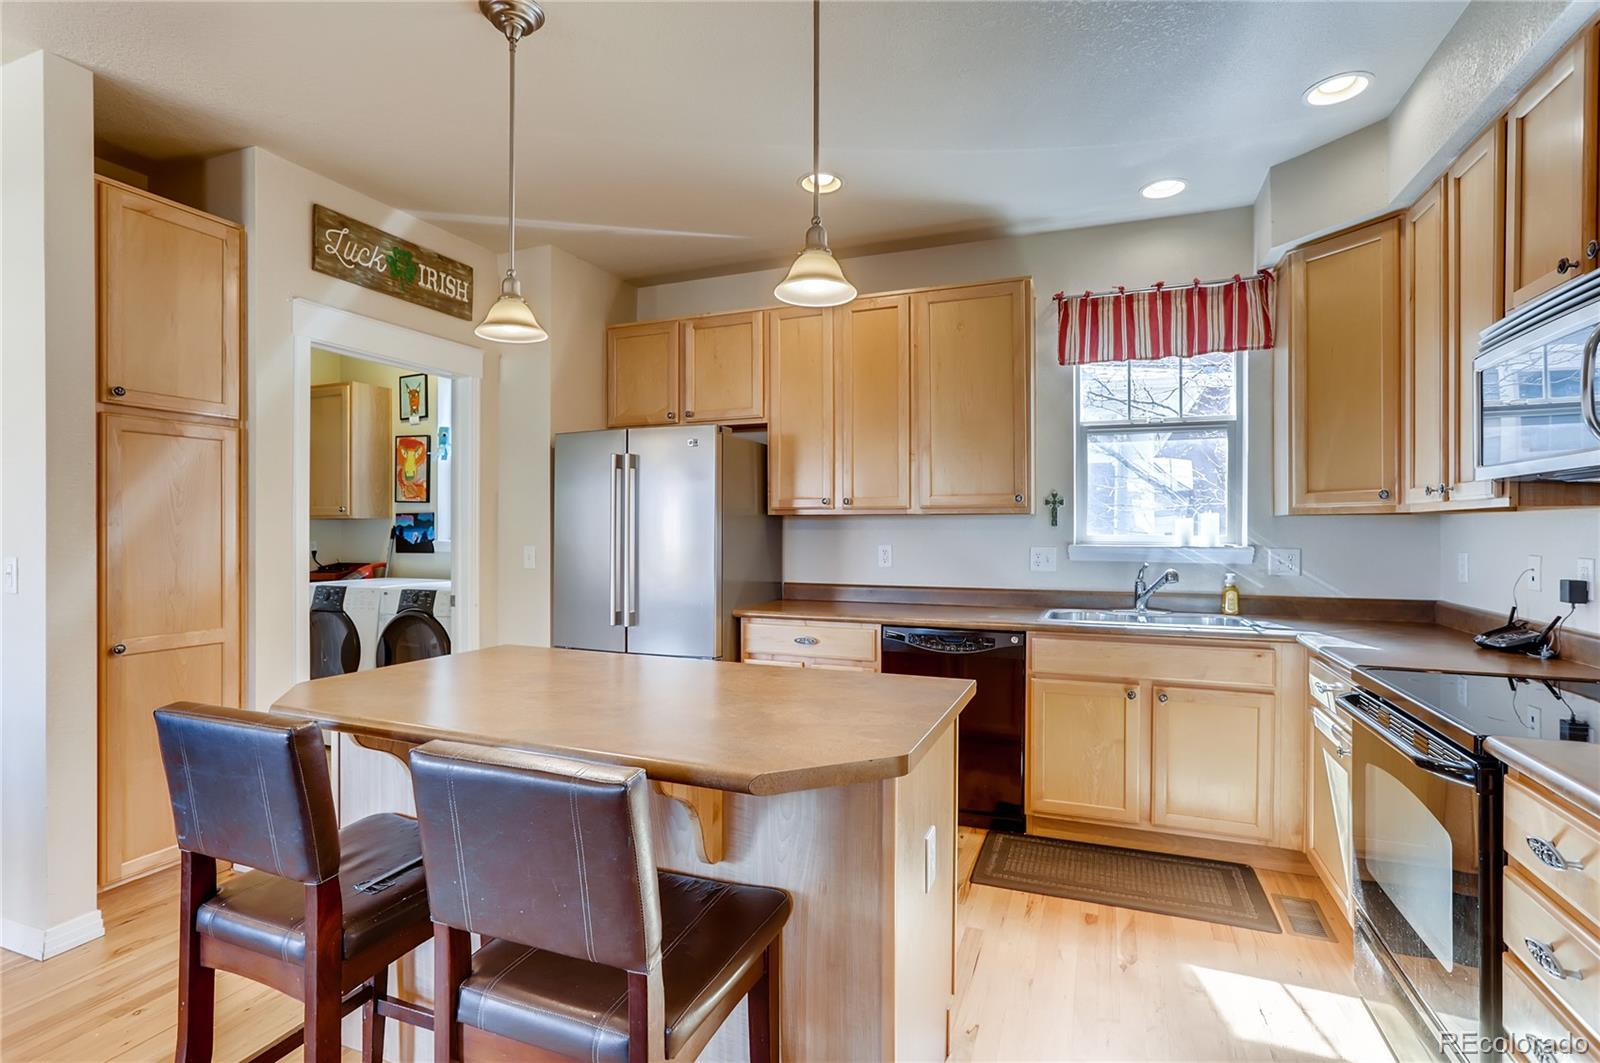 MLS# 3732250 - 13 - 650 Homestead Street, Lafayette, CO 80026